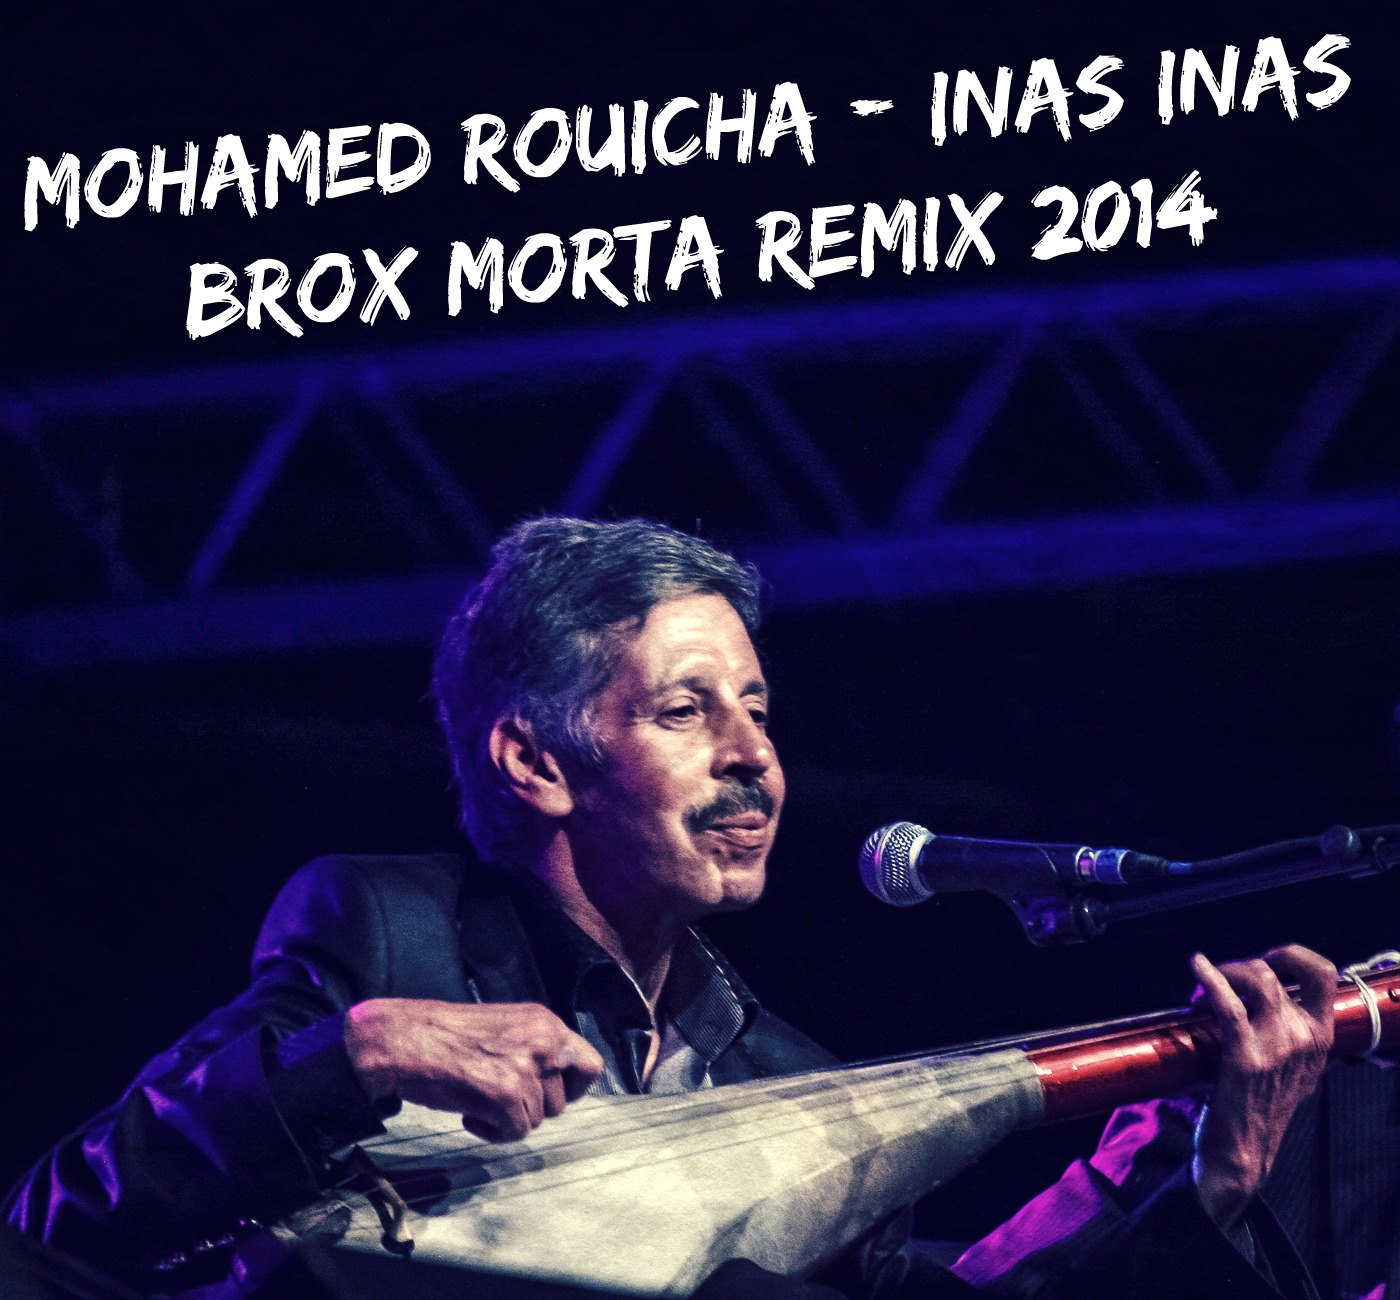 mohamed rouicha inas inas